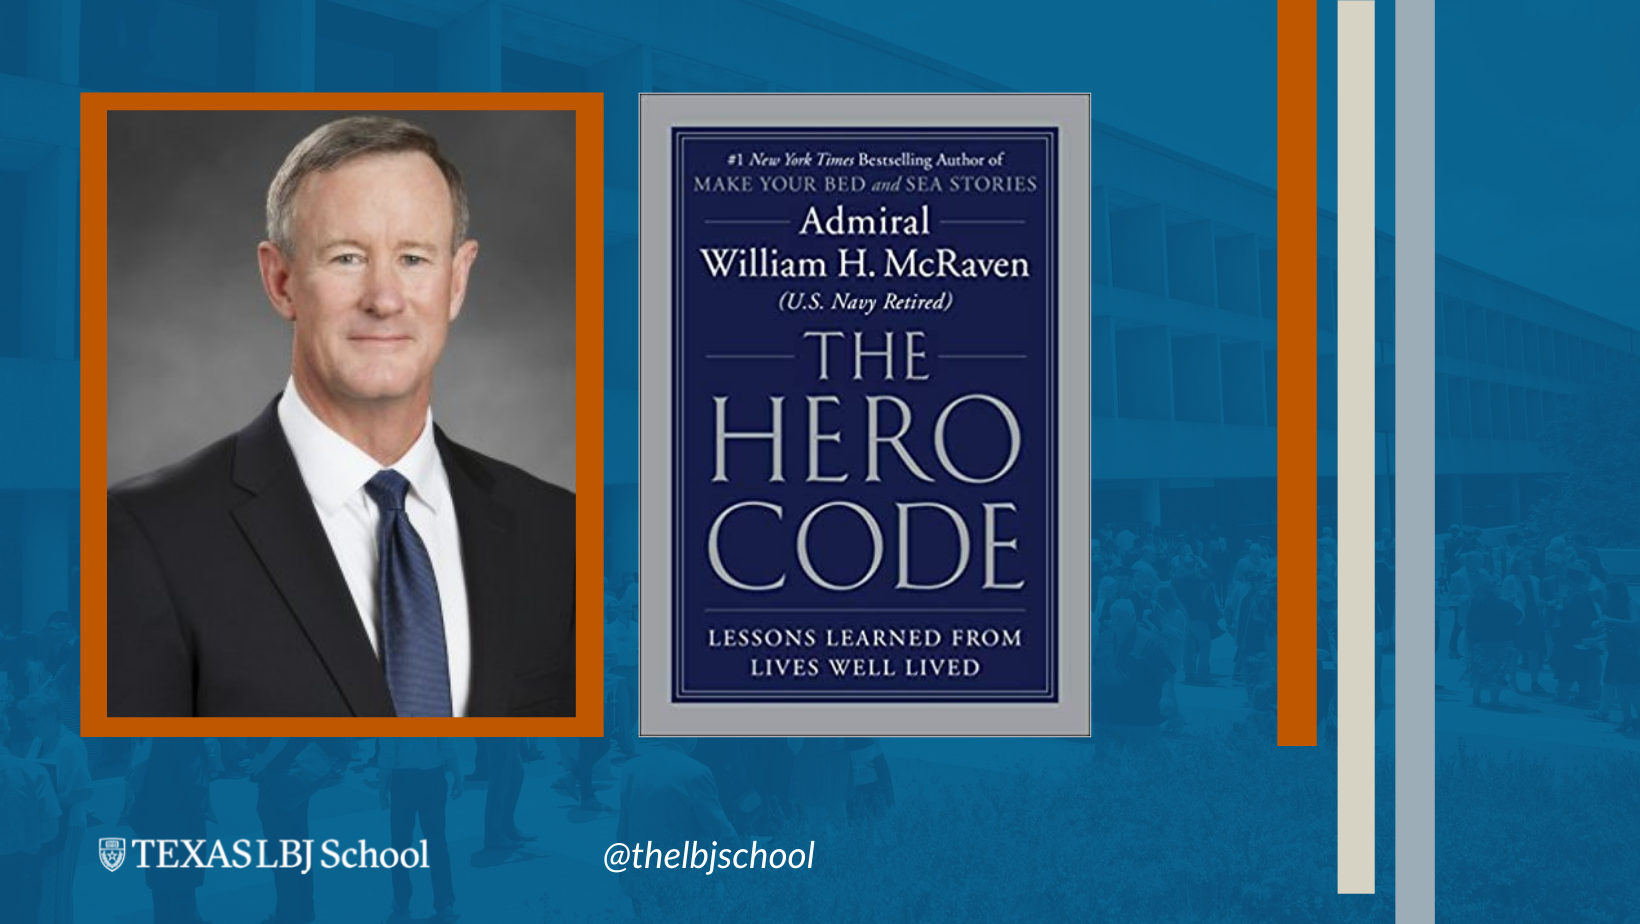 Admiral William McRaven is the author of The Hero Code